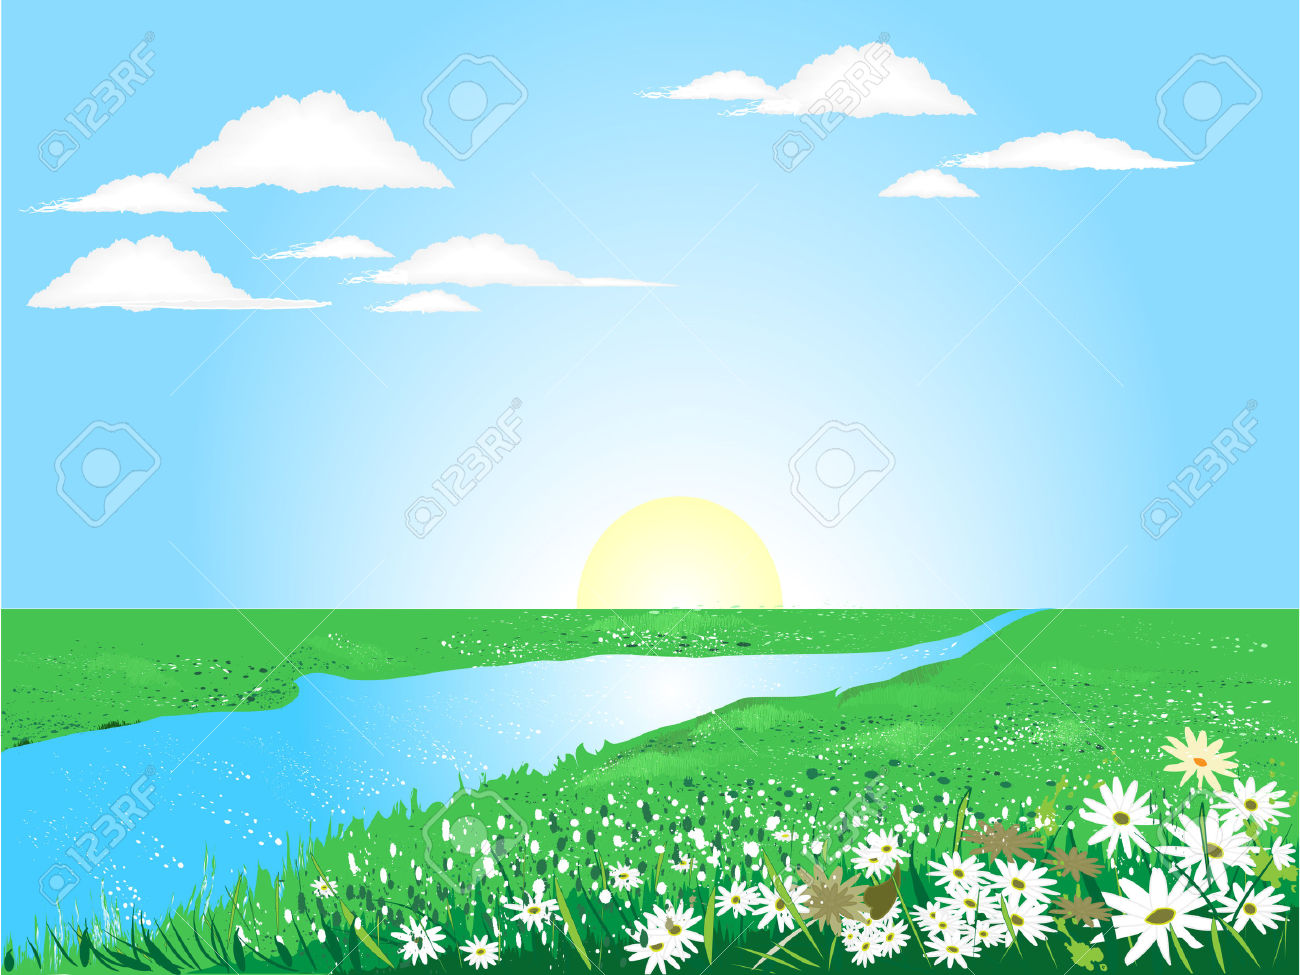 Free Beautiful Day Cliparts, Download Free Clip Art, Free Clip Art.